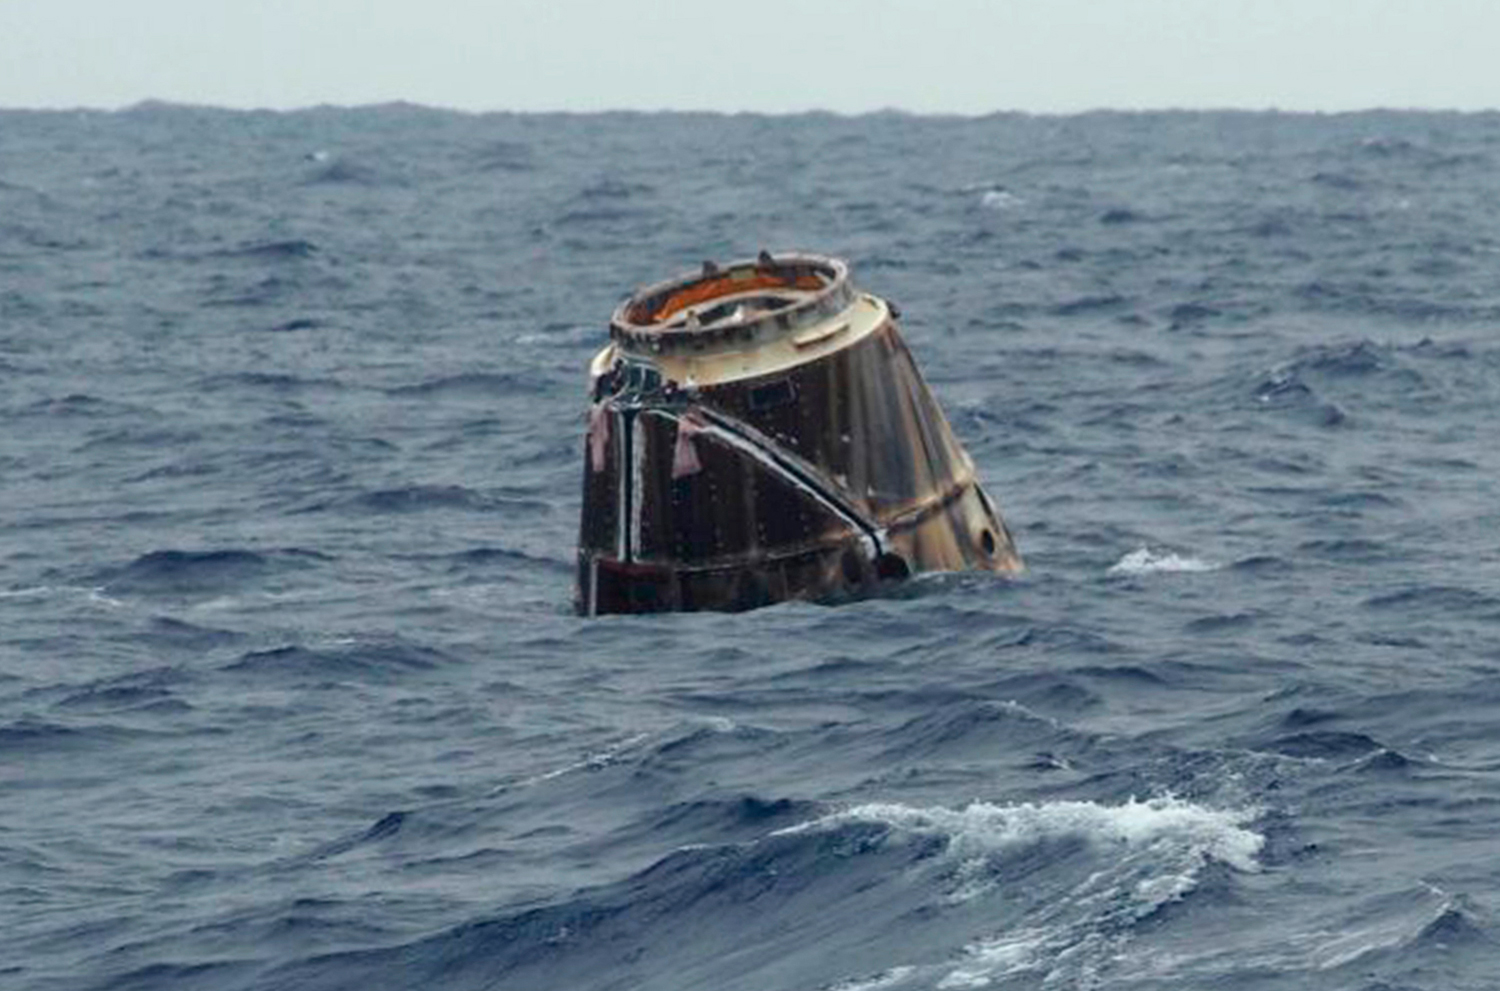 SpaceX's unmanned Dragon capsule floats in the Pacific Ocean off of Baja California on May 31, 2012.